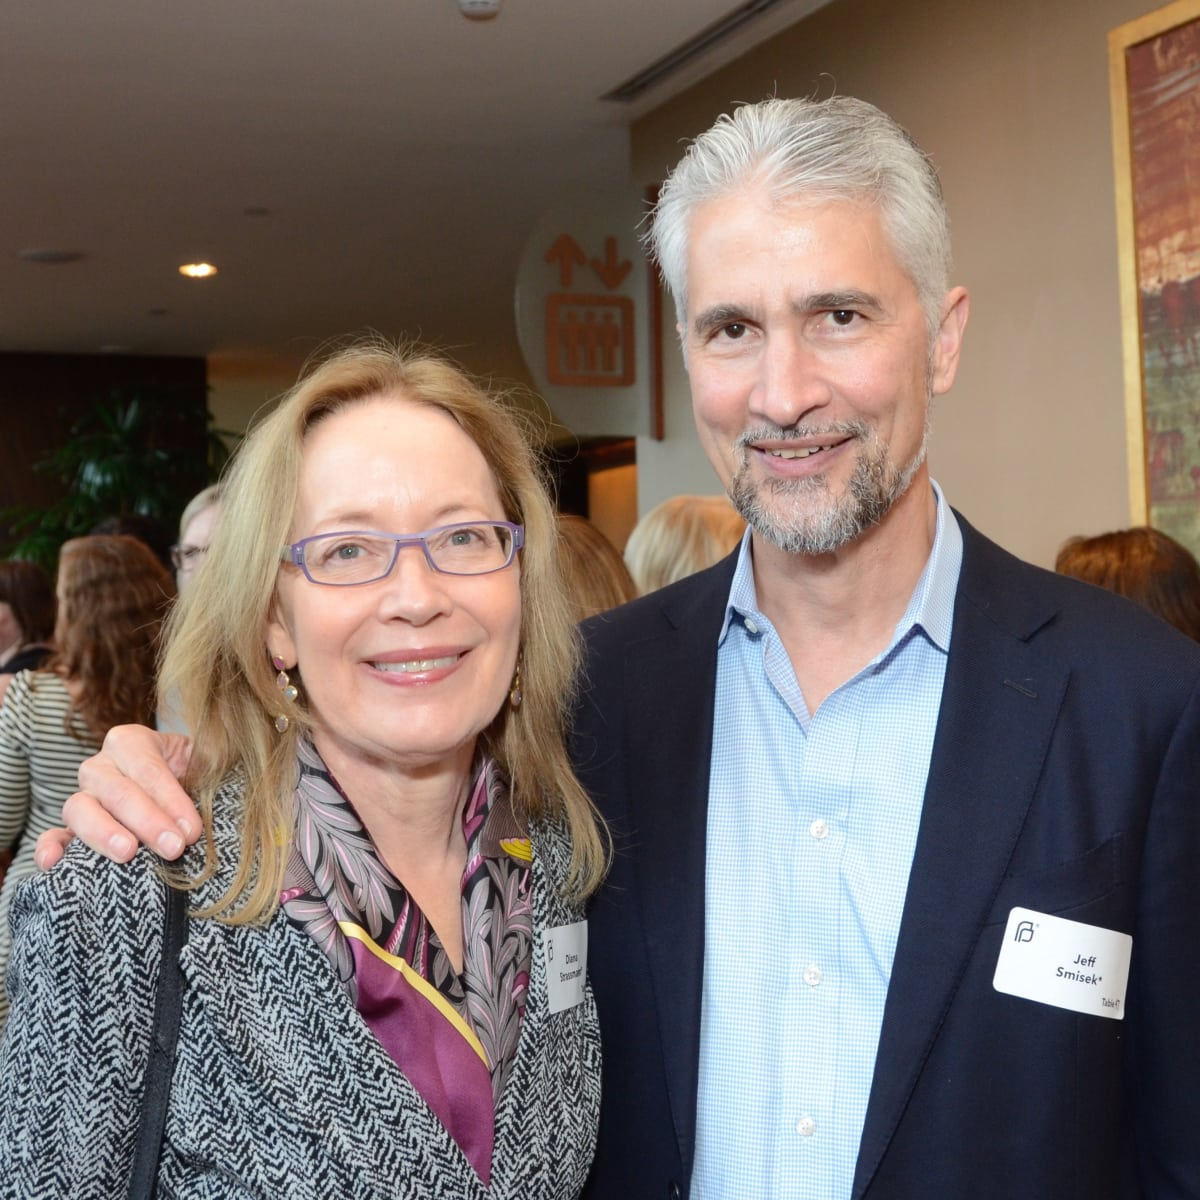 Diana Strassmann, Jeff Smisek at Planned Parenthood luncheon